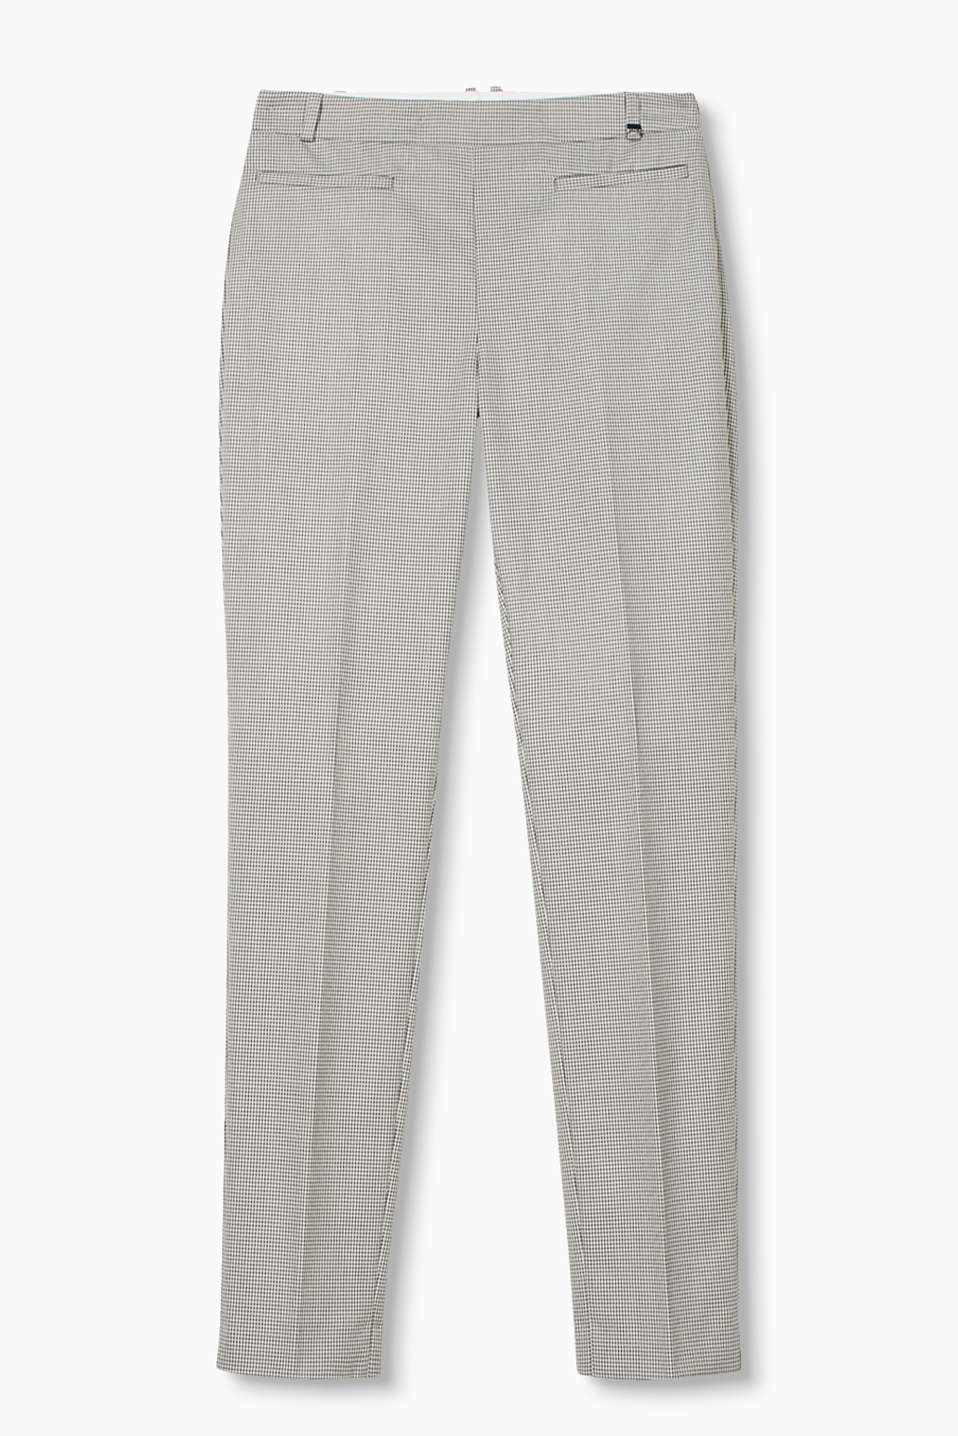 Stretchy twill trousers in a polyester/viscose blend with welt pockets and a side zip